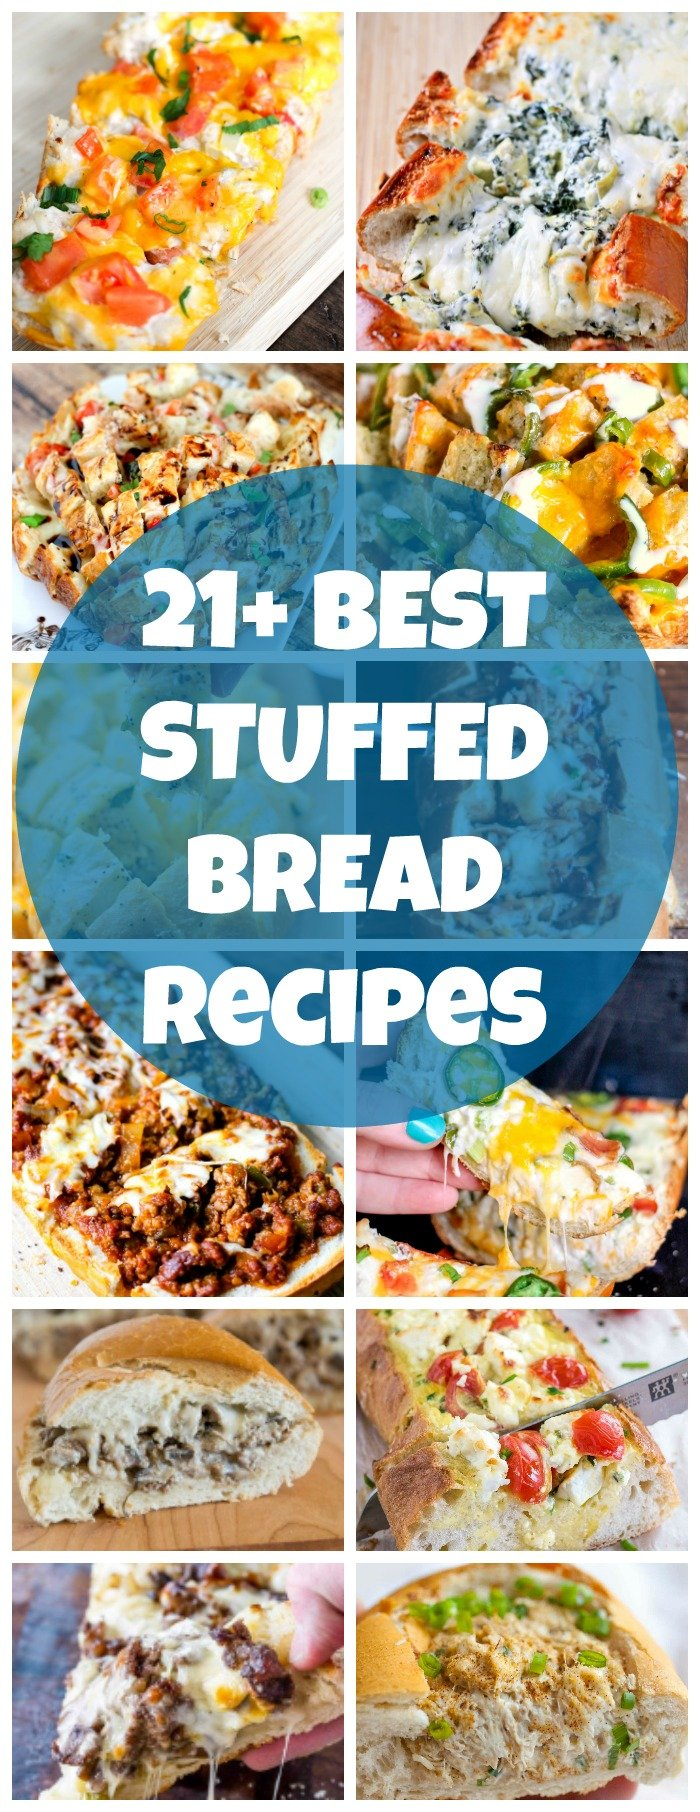 Stuffed bread is so versatile and perfect for meals or appetizers. Whip up a loaf on game-day, for a pot-luck, or just to stay home and enjoy! Here's a list of the BEST STUFFED BREAD RECIPES!